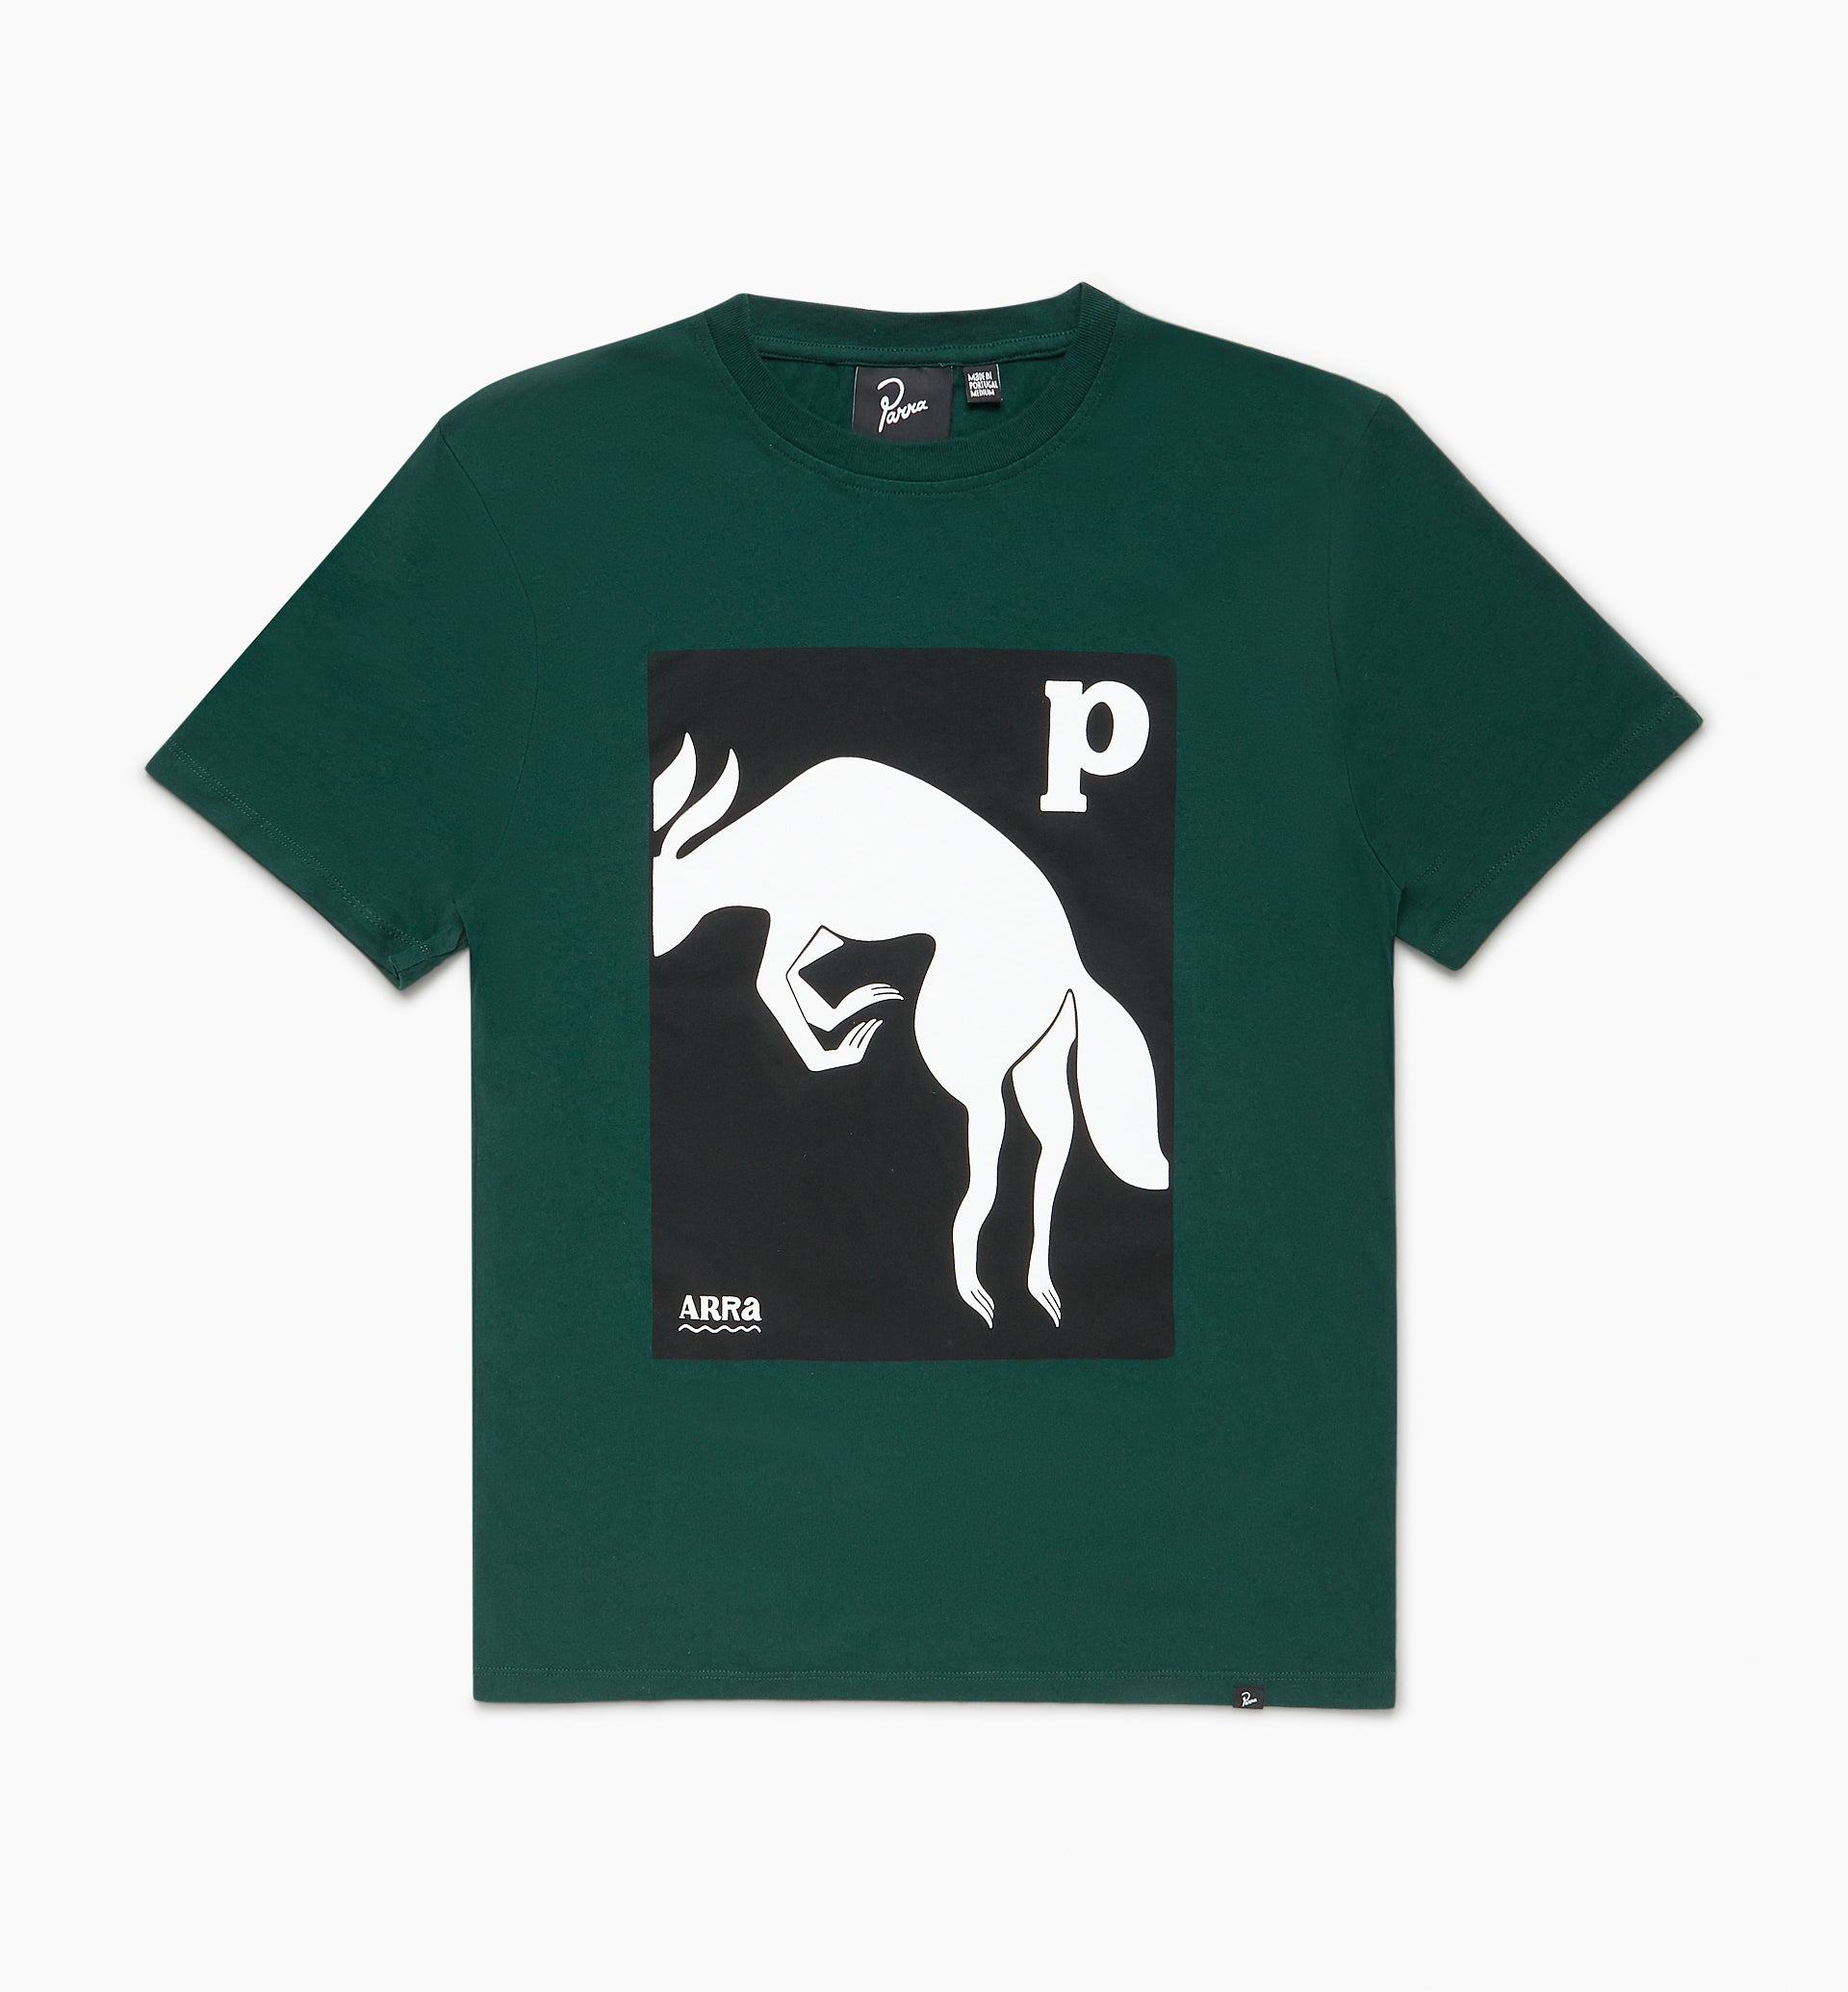 Parra - the brown fox t-shirt